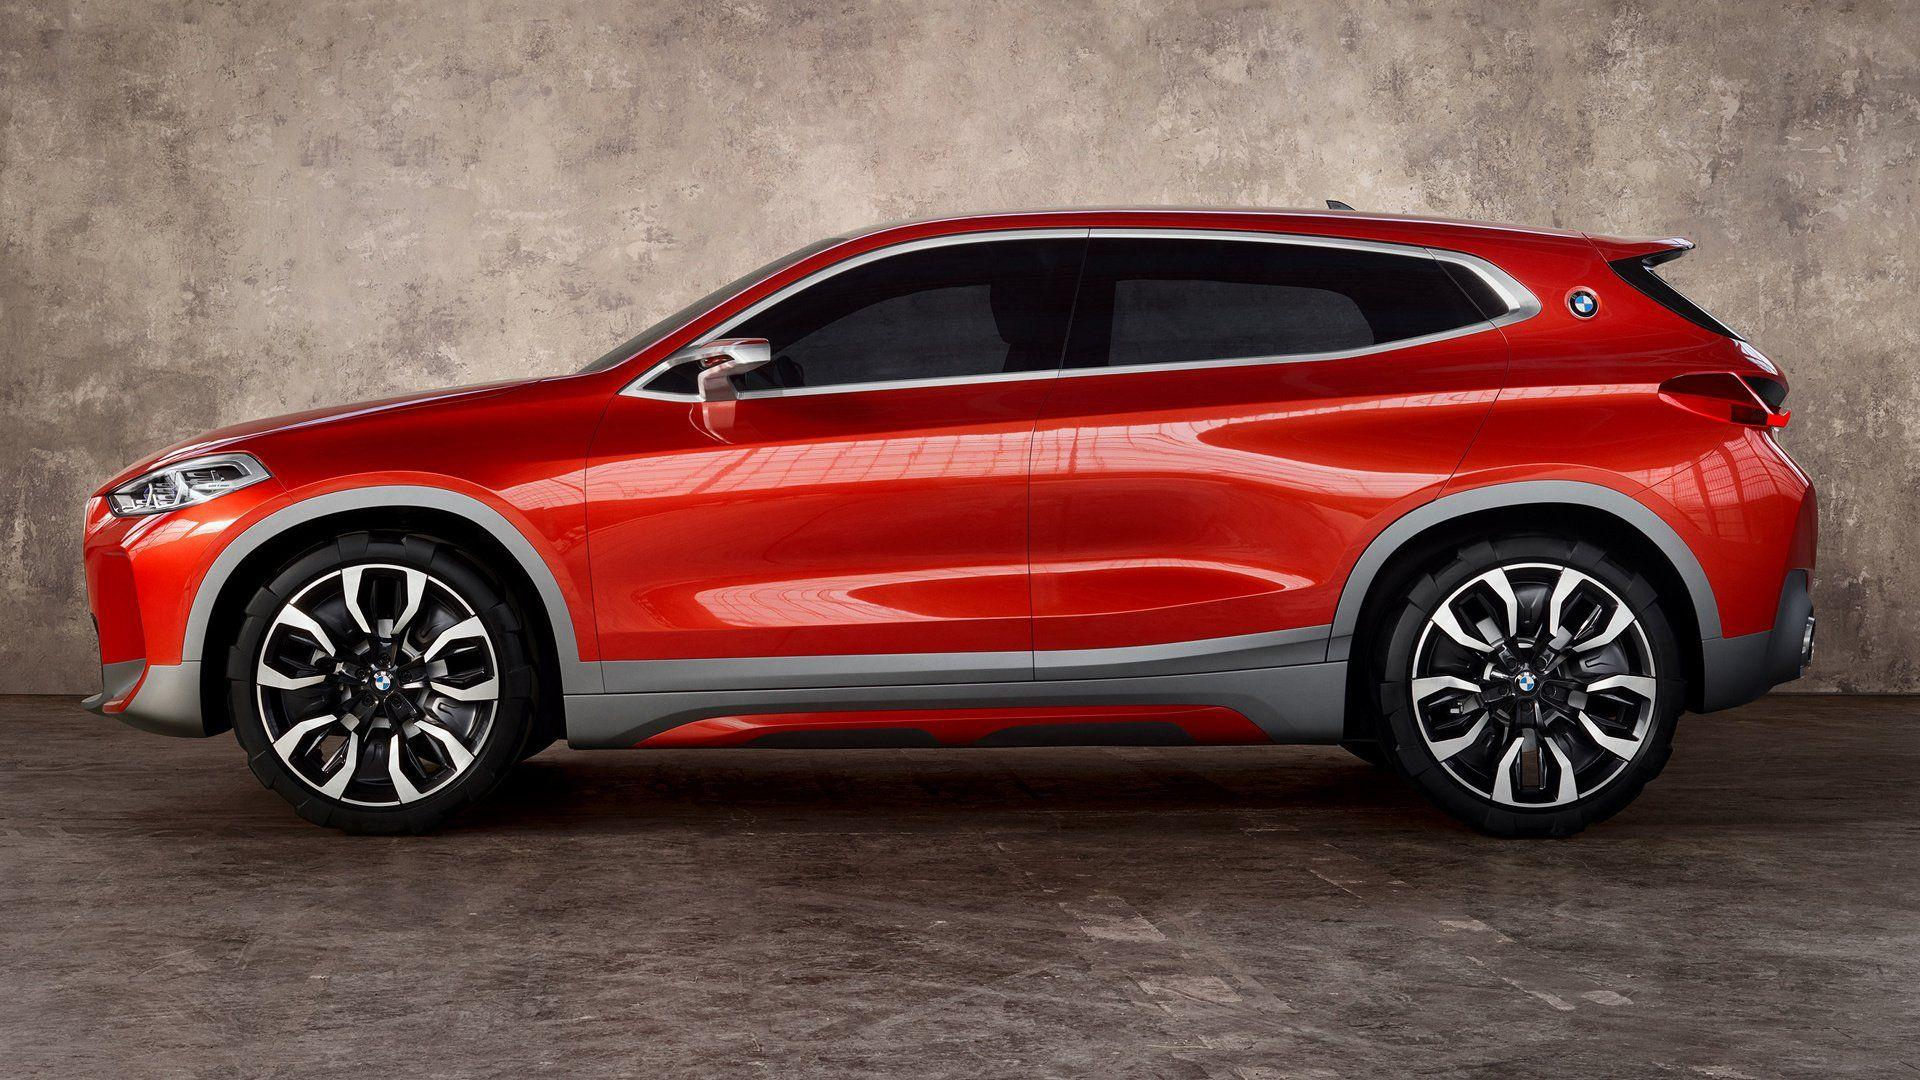 17 BMW X2 HD Wallpapers